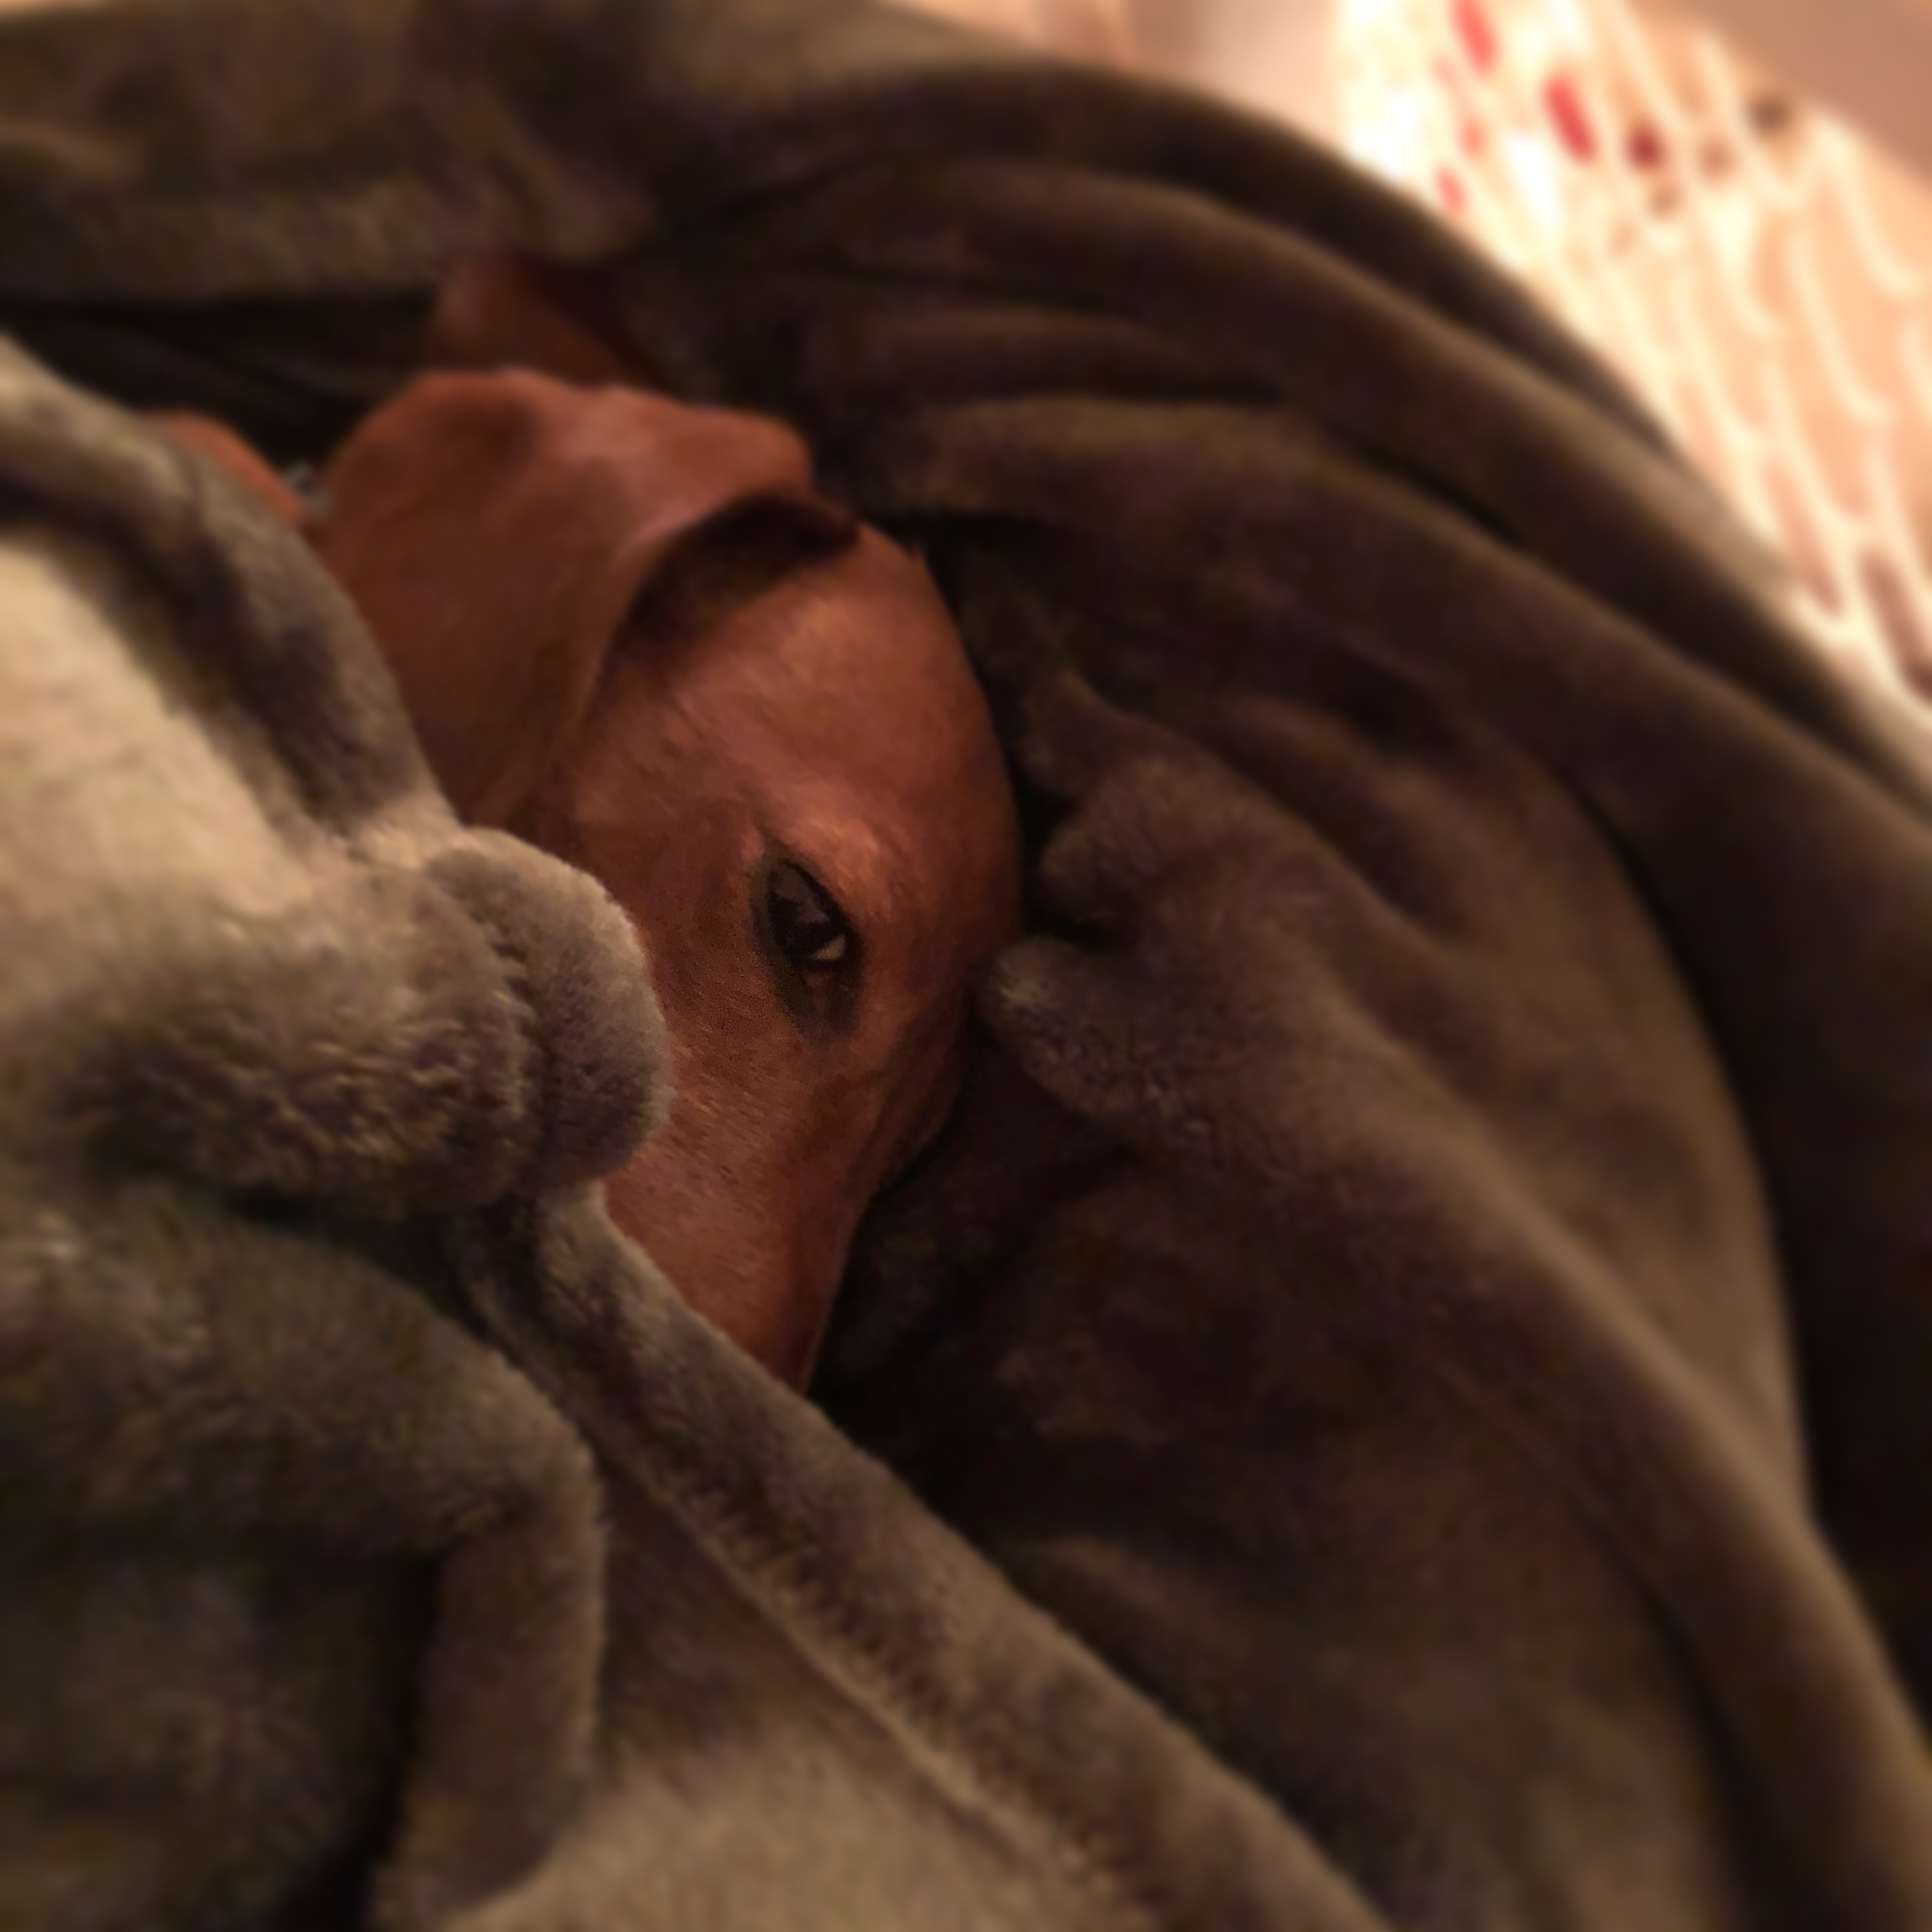 RoyRoy the dachshund snuggled under a green blanket